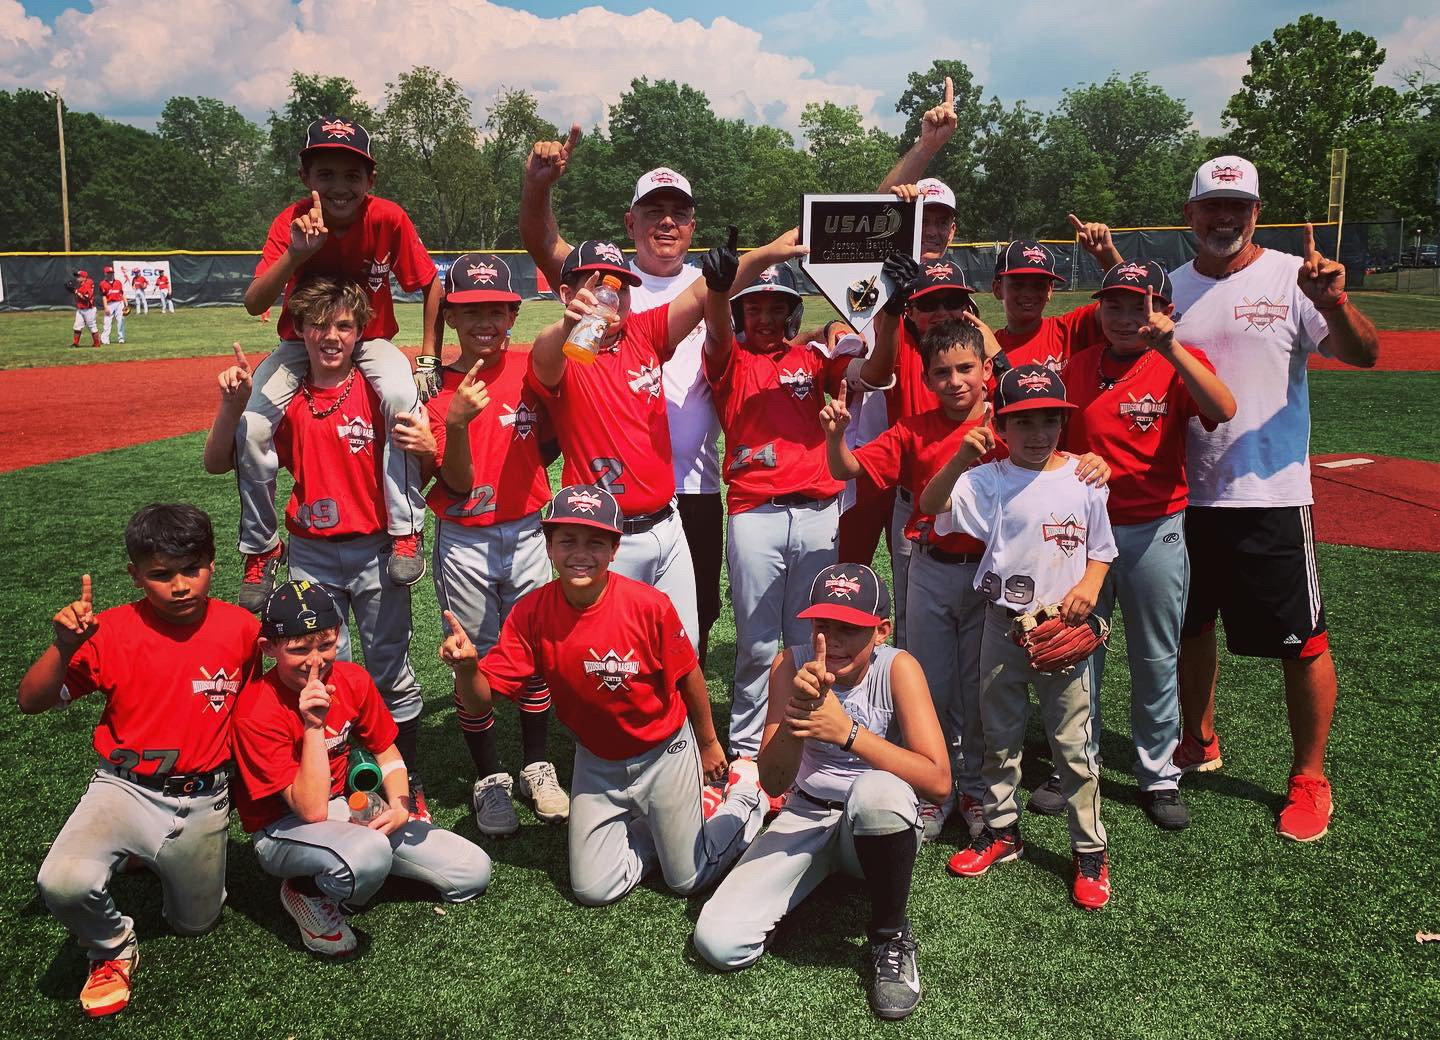 2019 USABL Jersey Battle Champs-11U